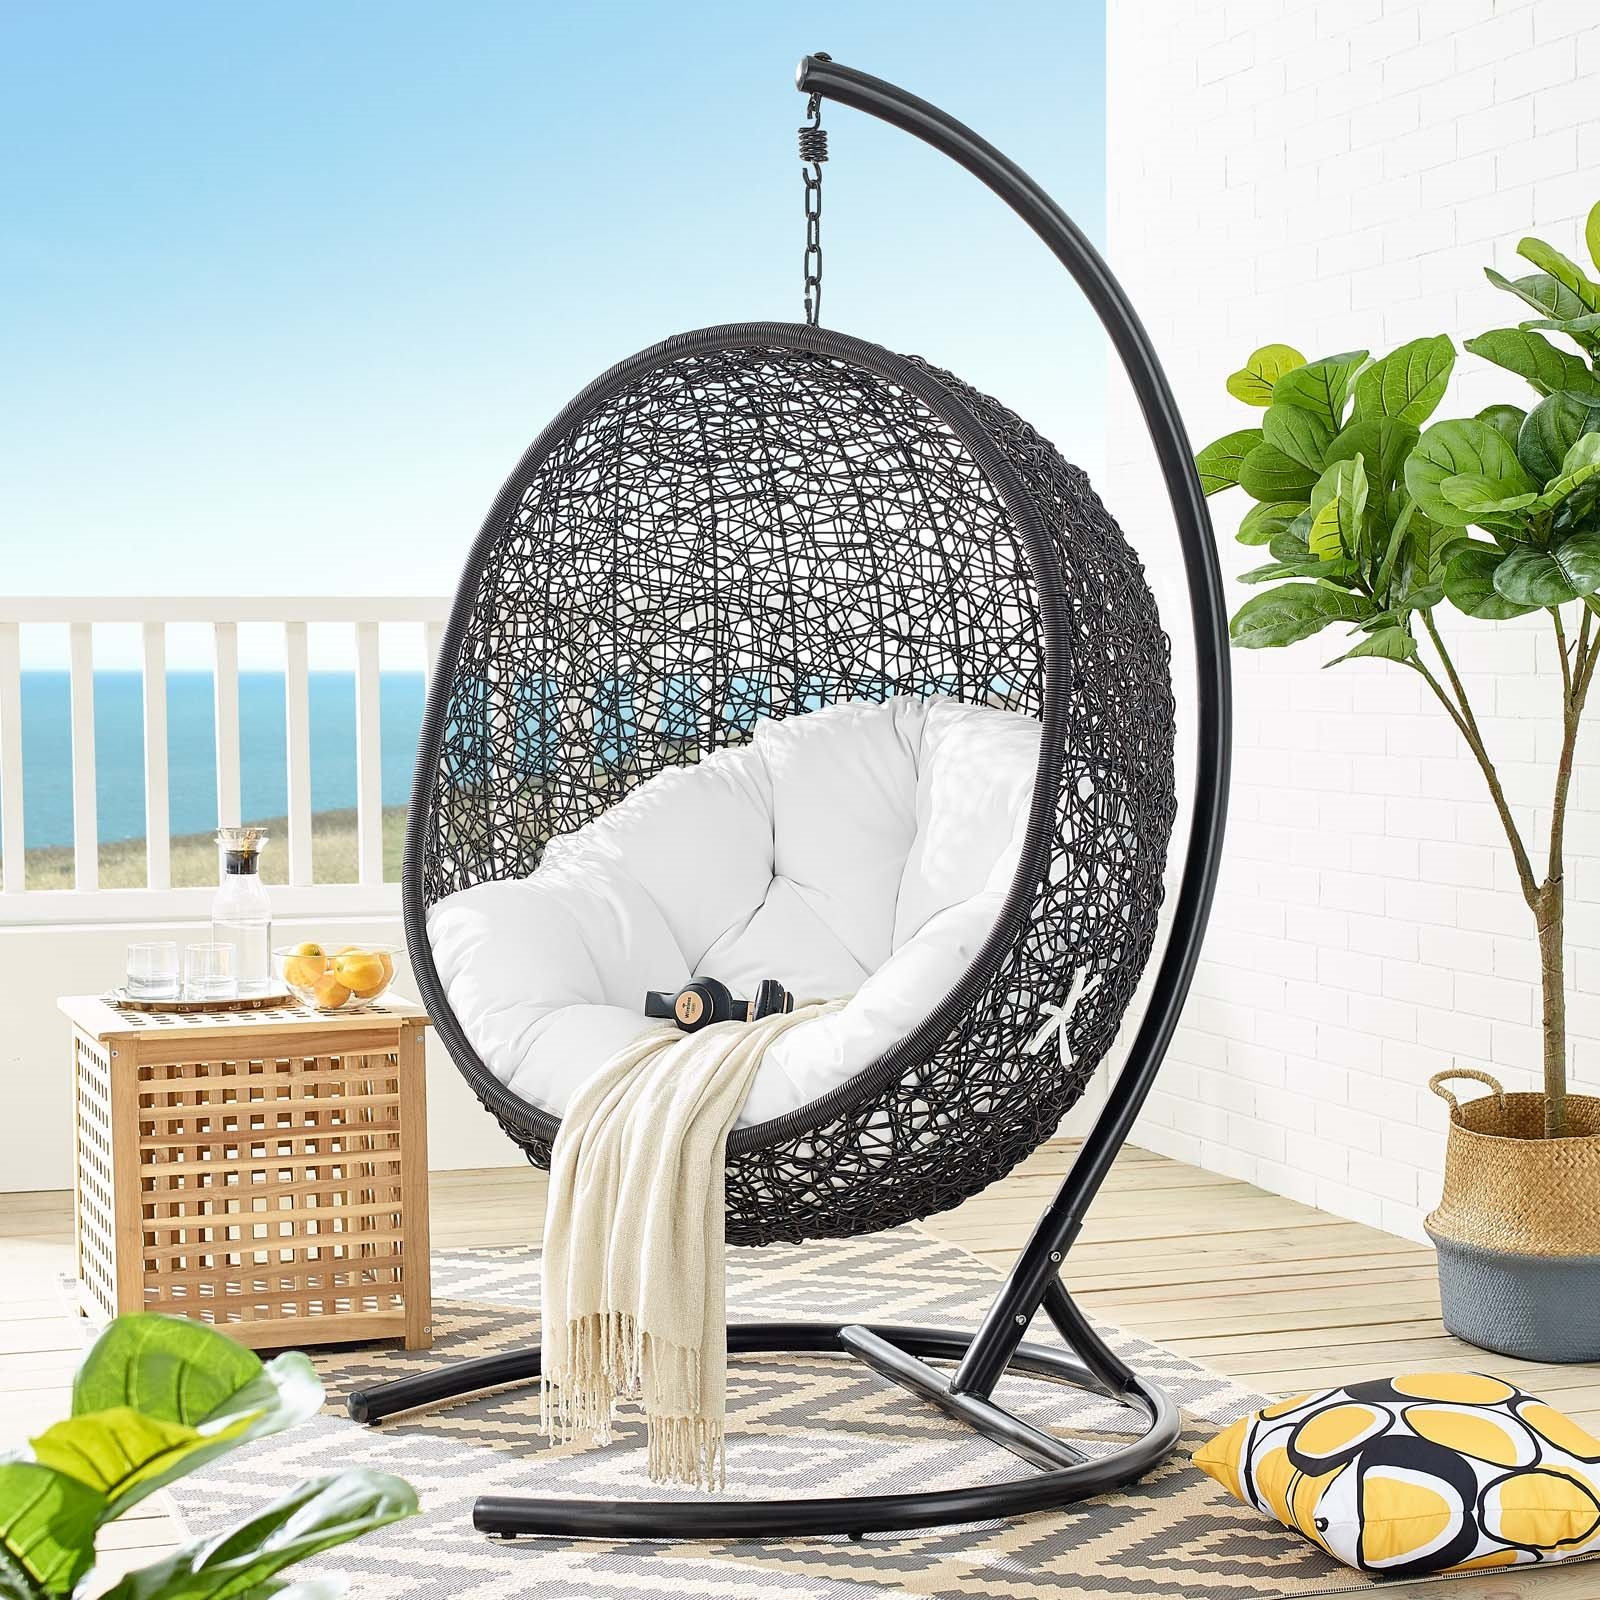 encase swing outdoor patio lounge chair white